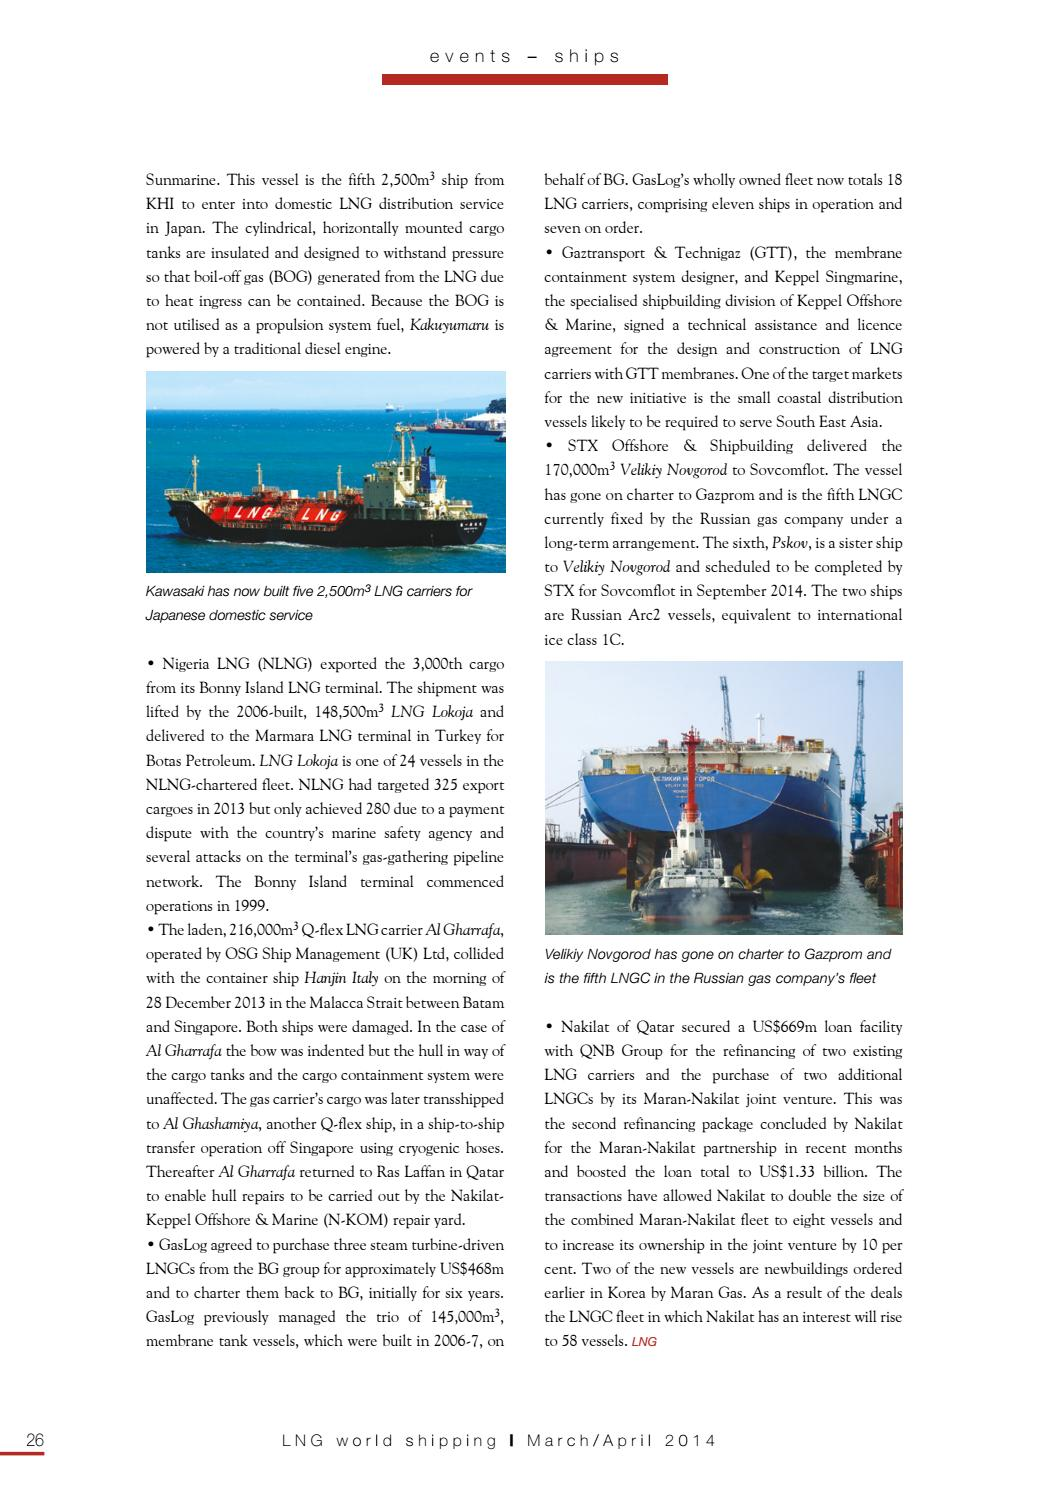 LNG World Shipping March/April 2014 by rivieramaritimemedia